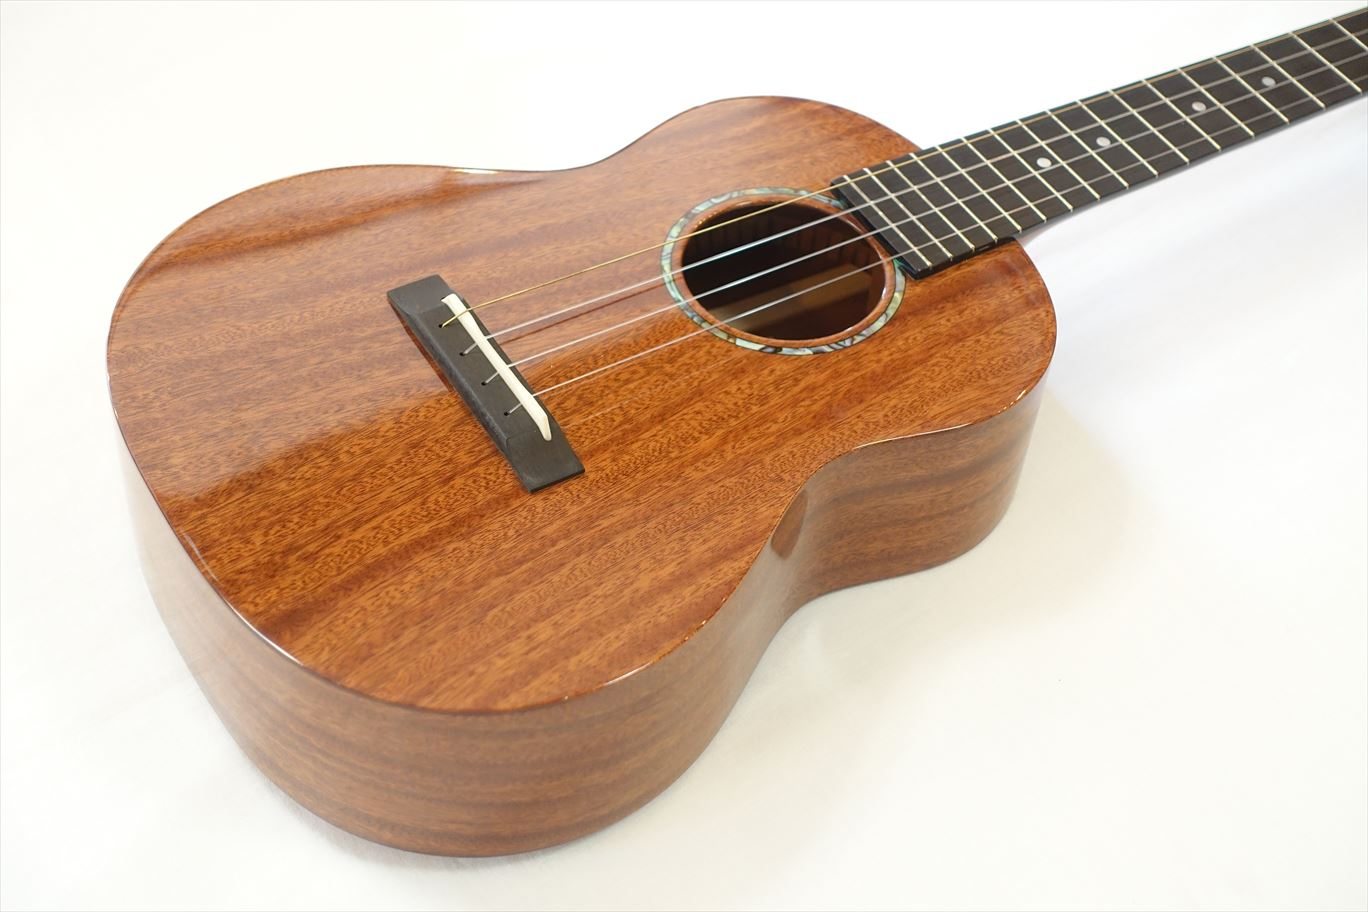 【Romero Creations】Grand Tenor Mahogany